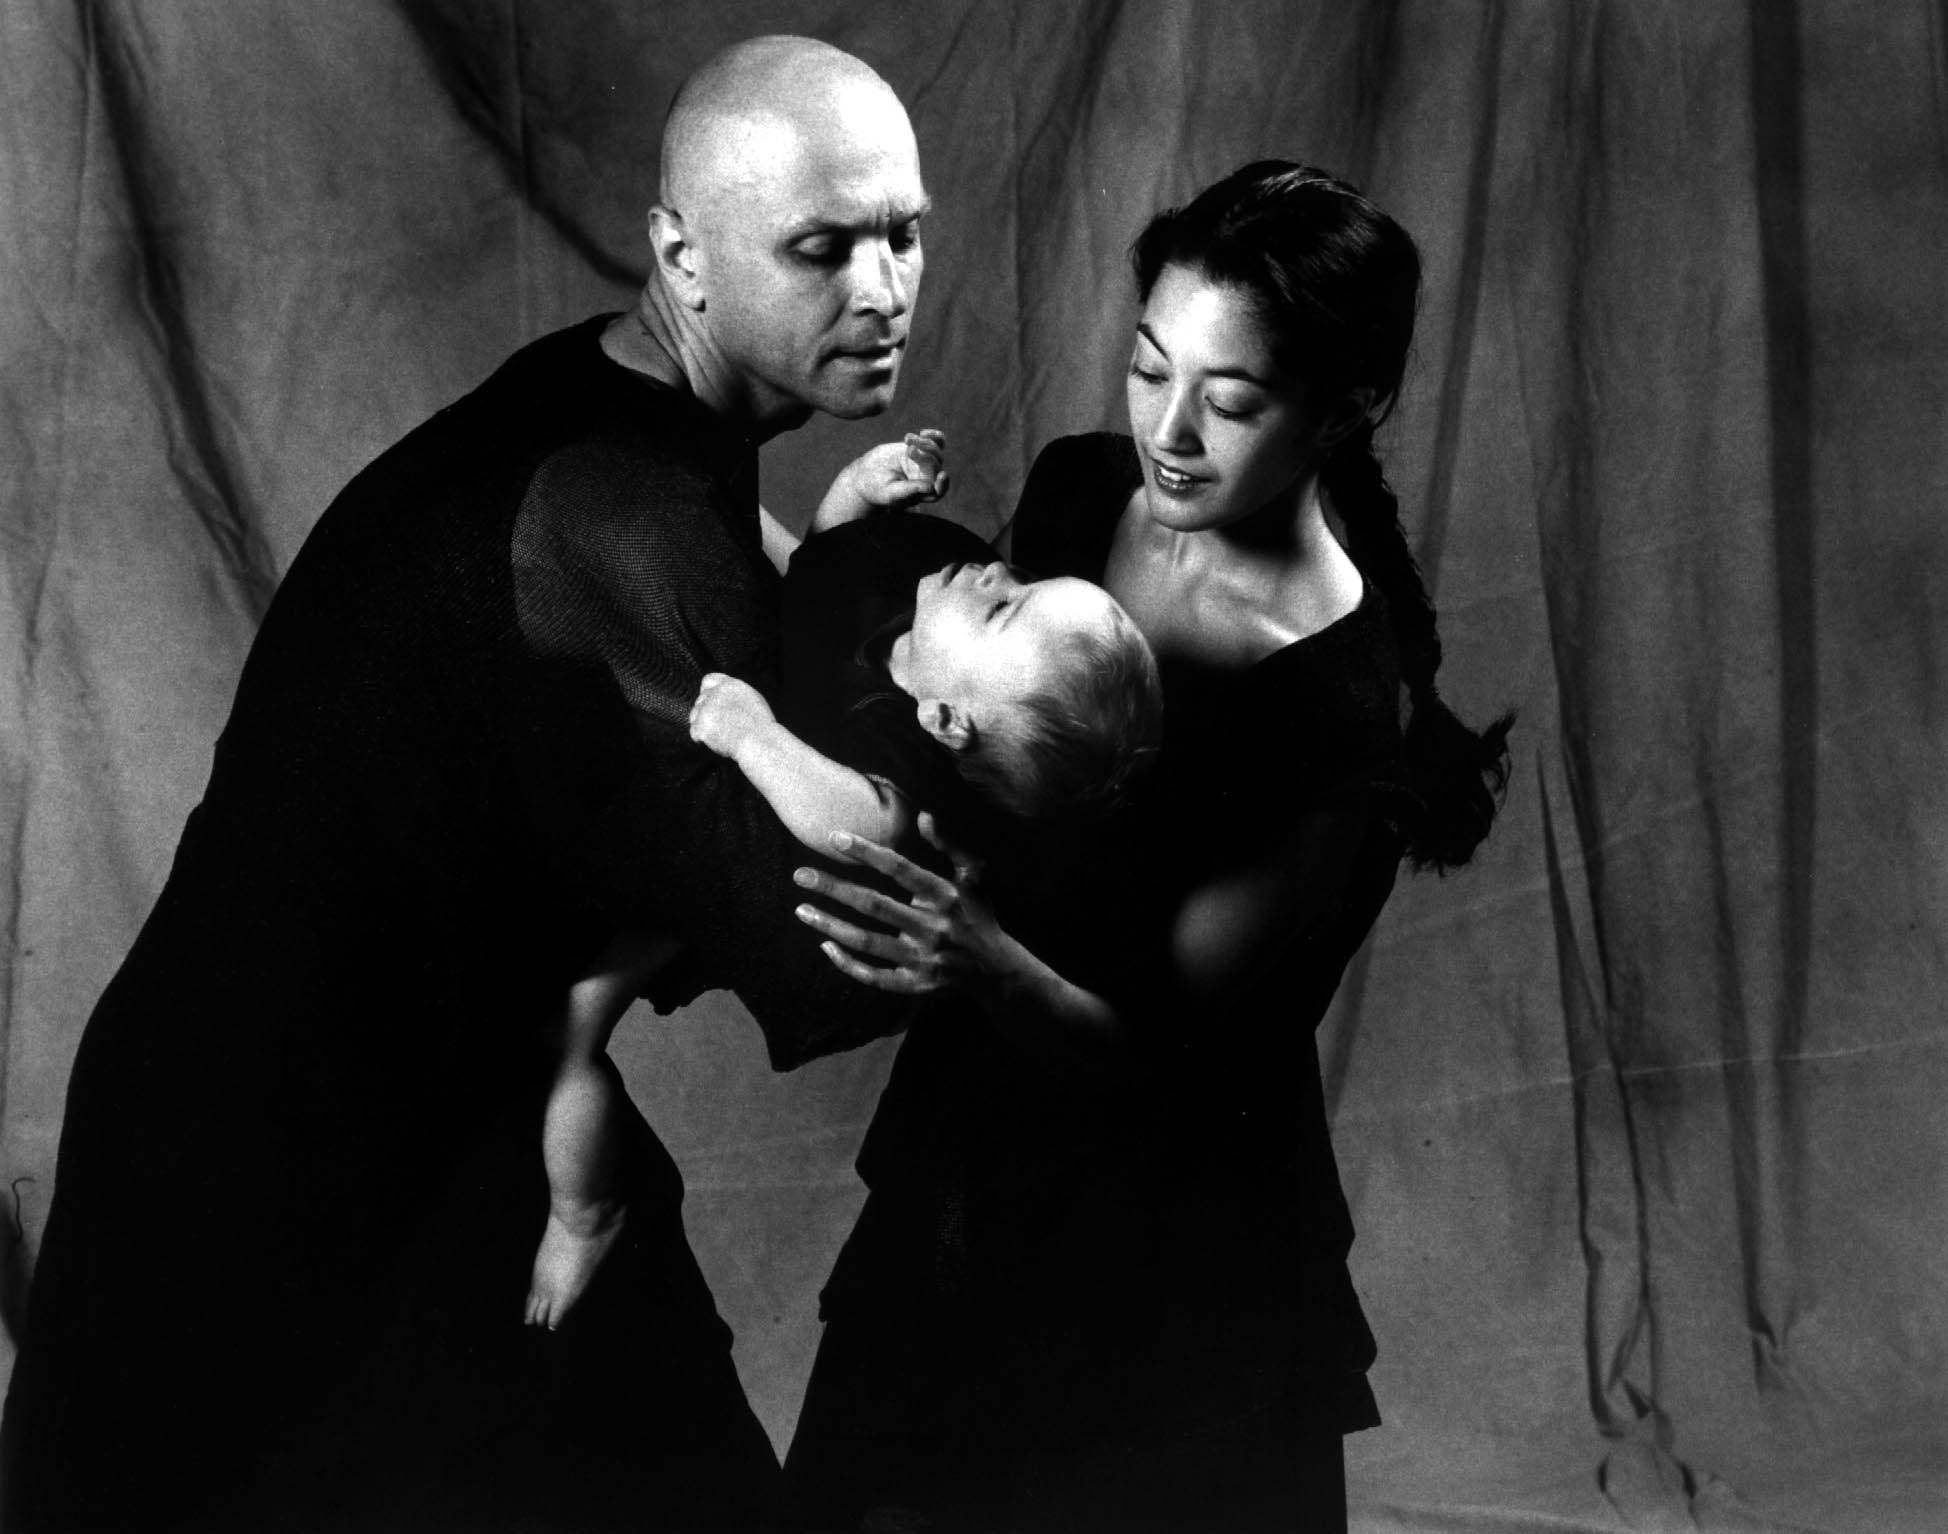 Souls (2001) -                  in the aftermath of war...                 Generations of Dancers                 Celebrate the Human Spirit